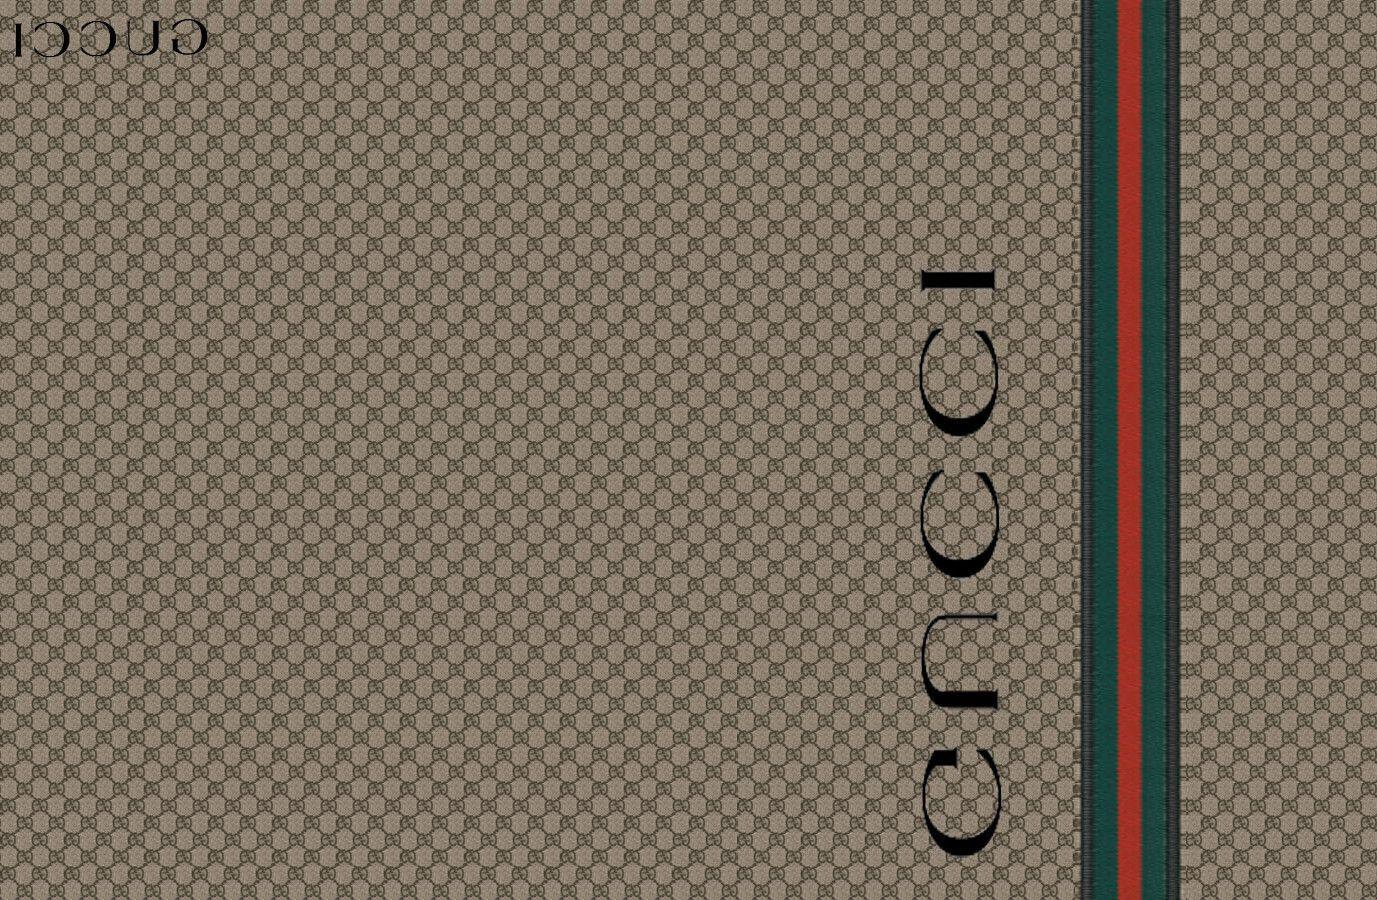 Gucci Logo Wallpapers 1377x900